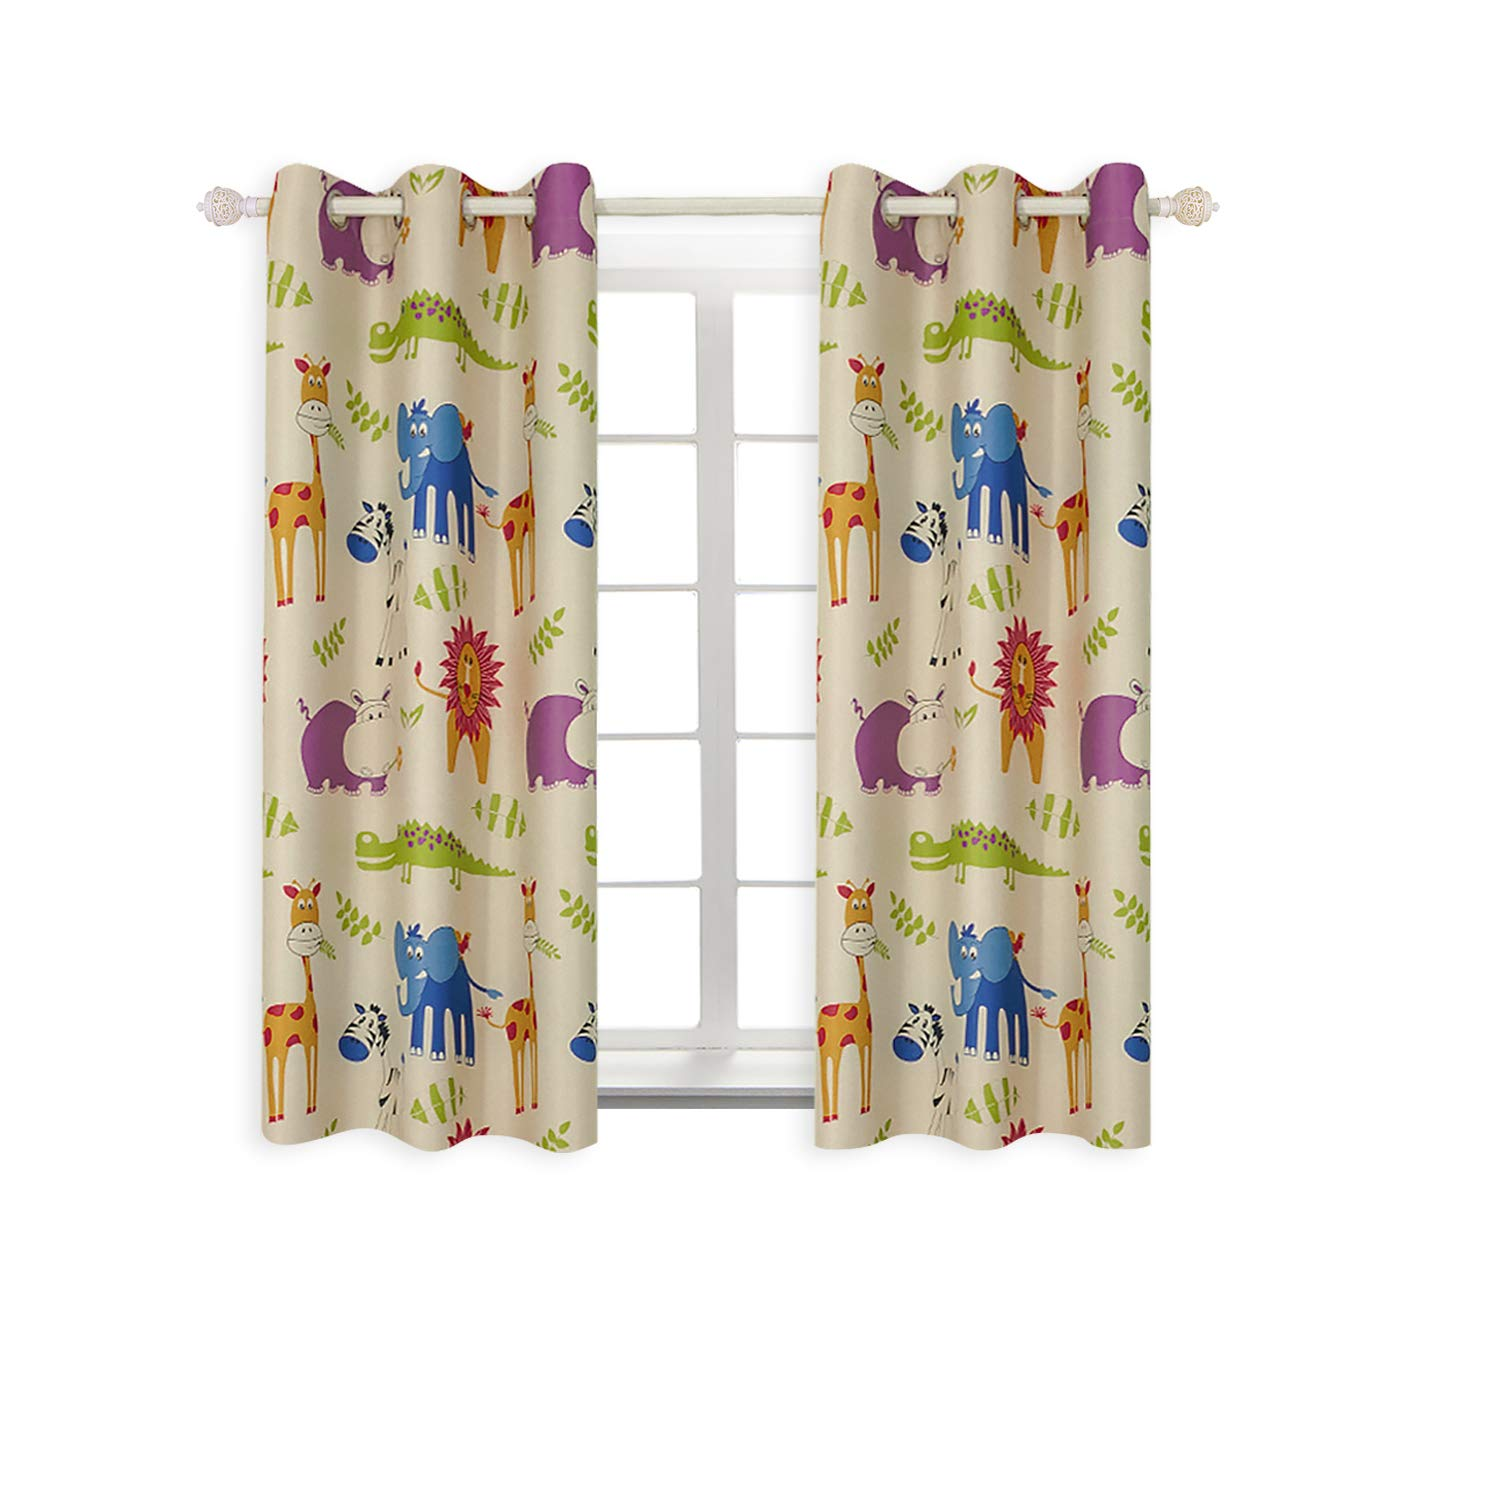 BGment Animal Zoo Kids Curtains for Bedroom Darkening, Classical Grommets, 2Panels (42'' Wx63 L, Curtains)